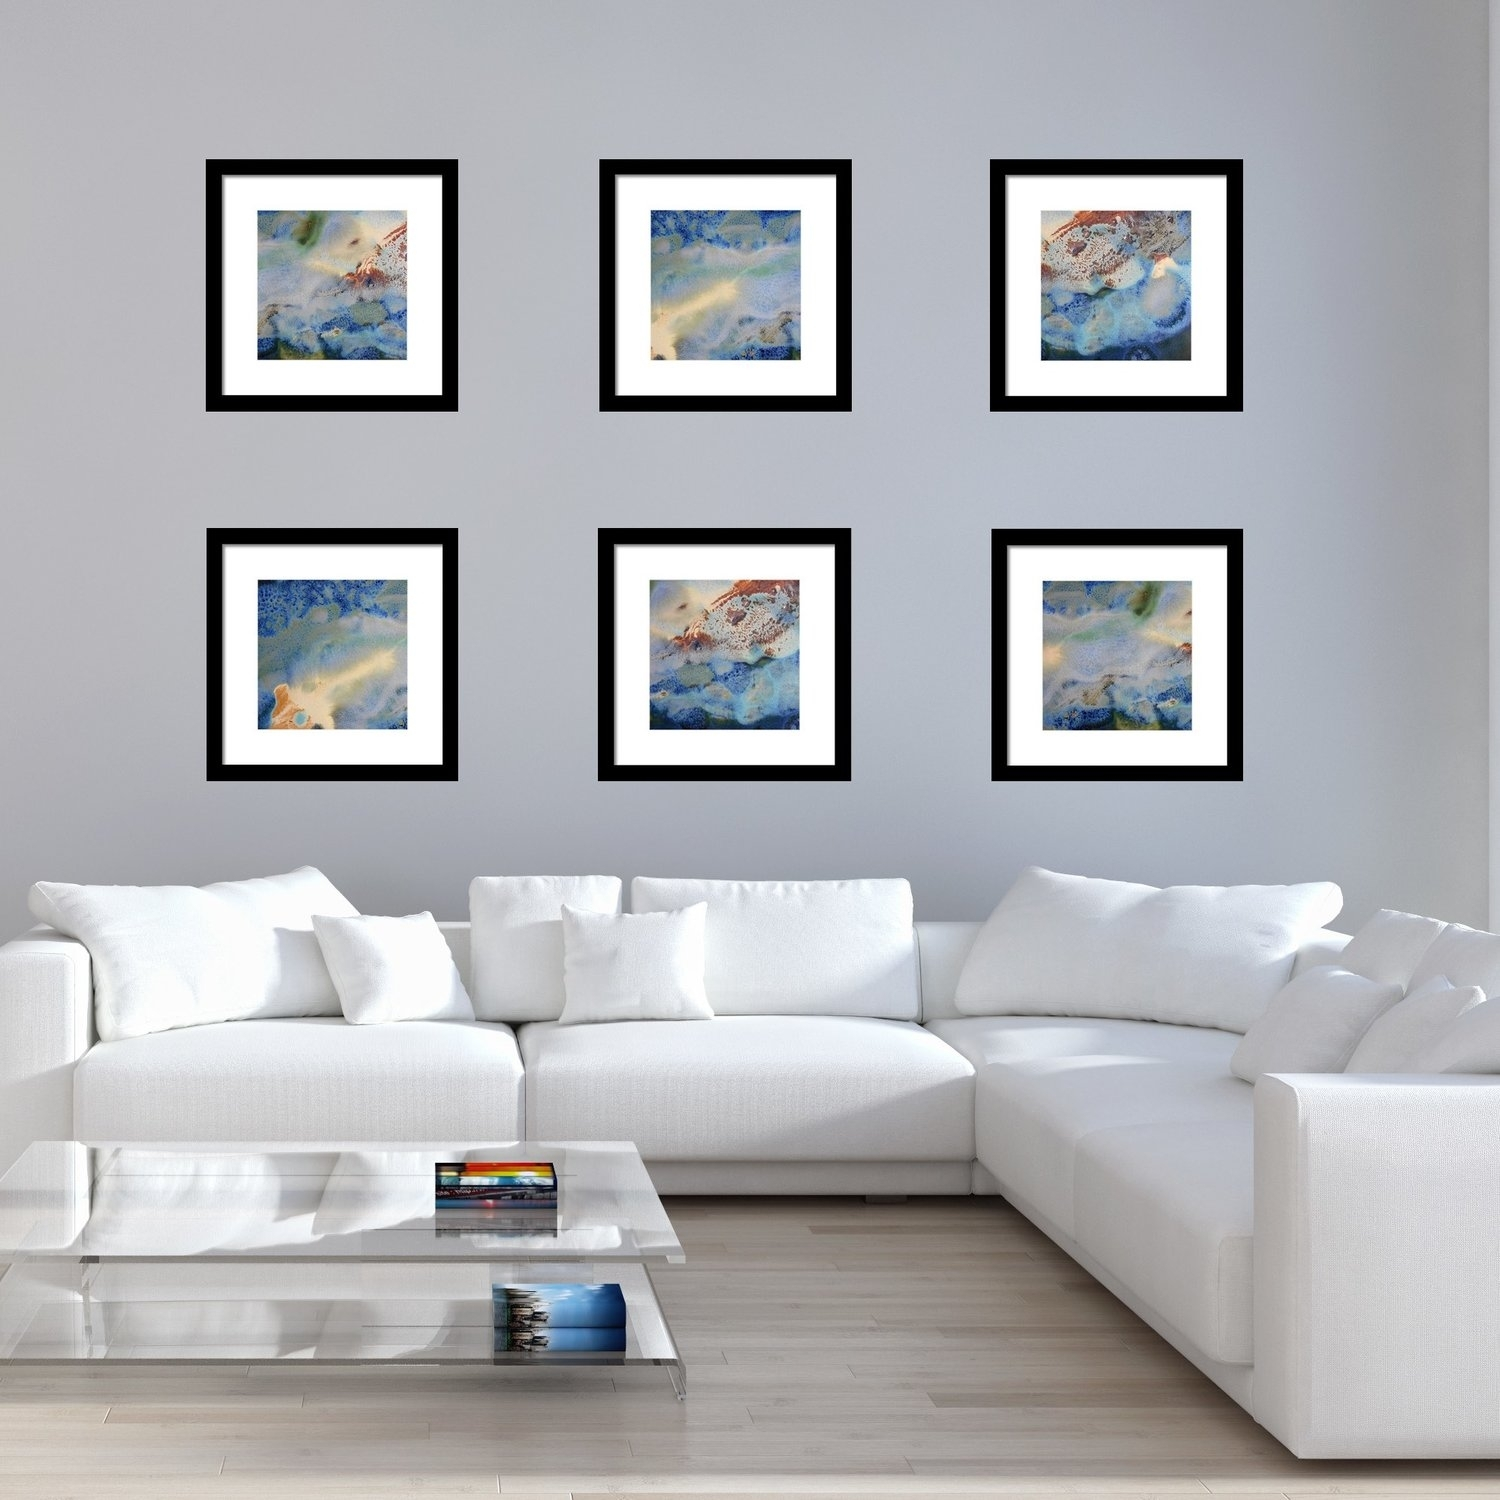 Set Of 6 Abstract Framed Prints – Square #17, 18 & 19 | White Regarding Most Recently Released Framed Abstract Wall Art (View 18 of 20)